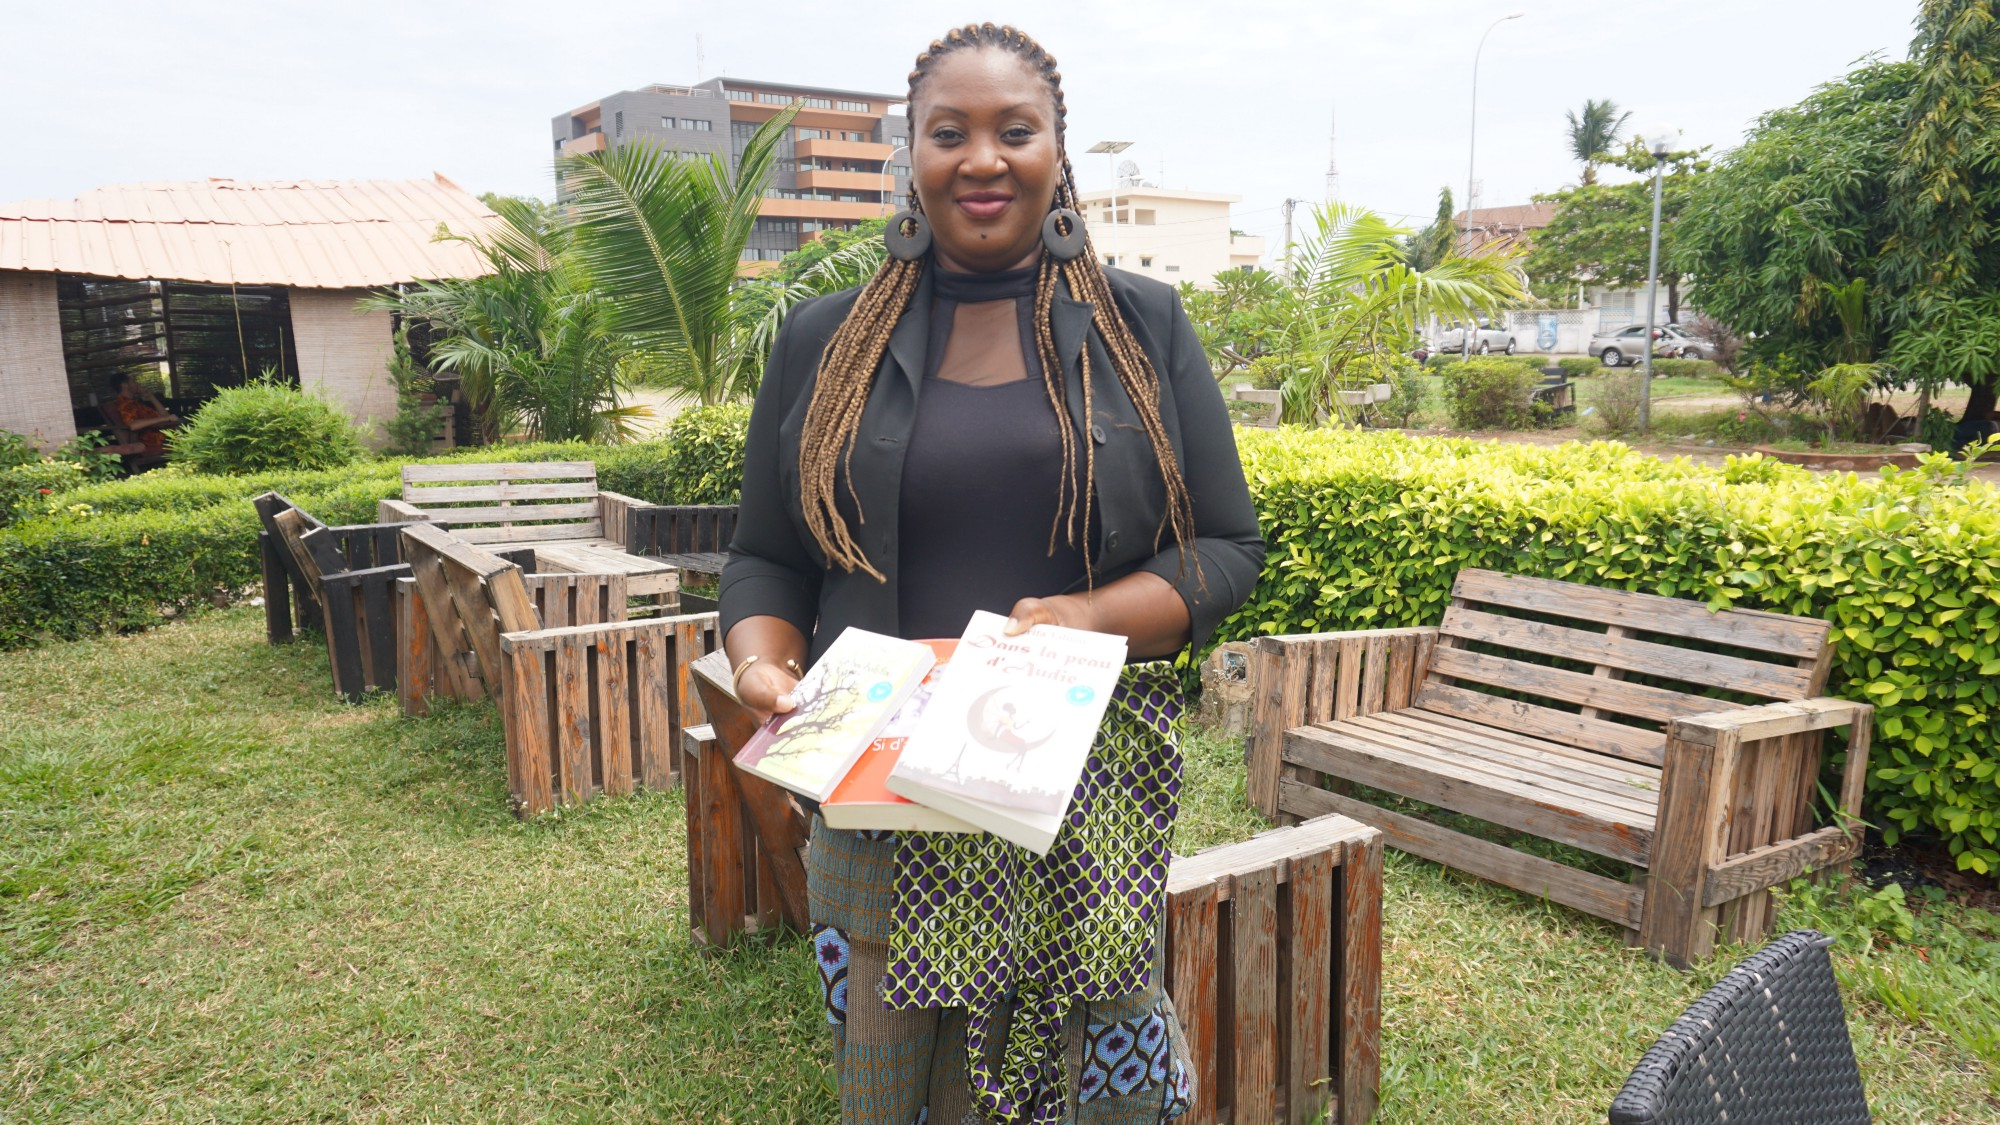 Ayaba Totin, holding some books from a typical delivery of Ayaba's Box of Books.